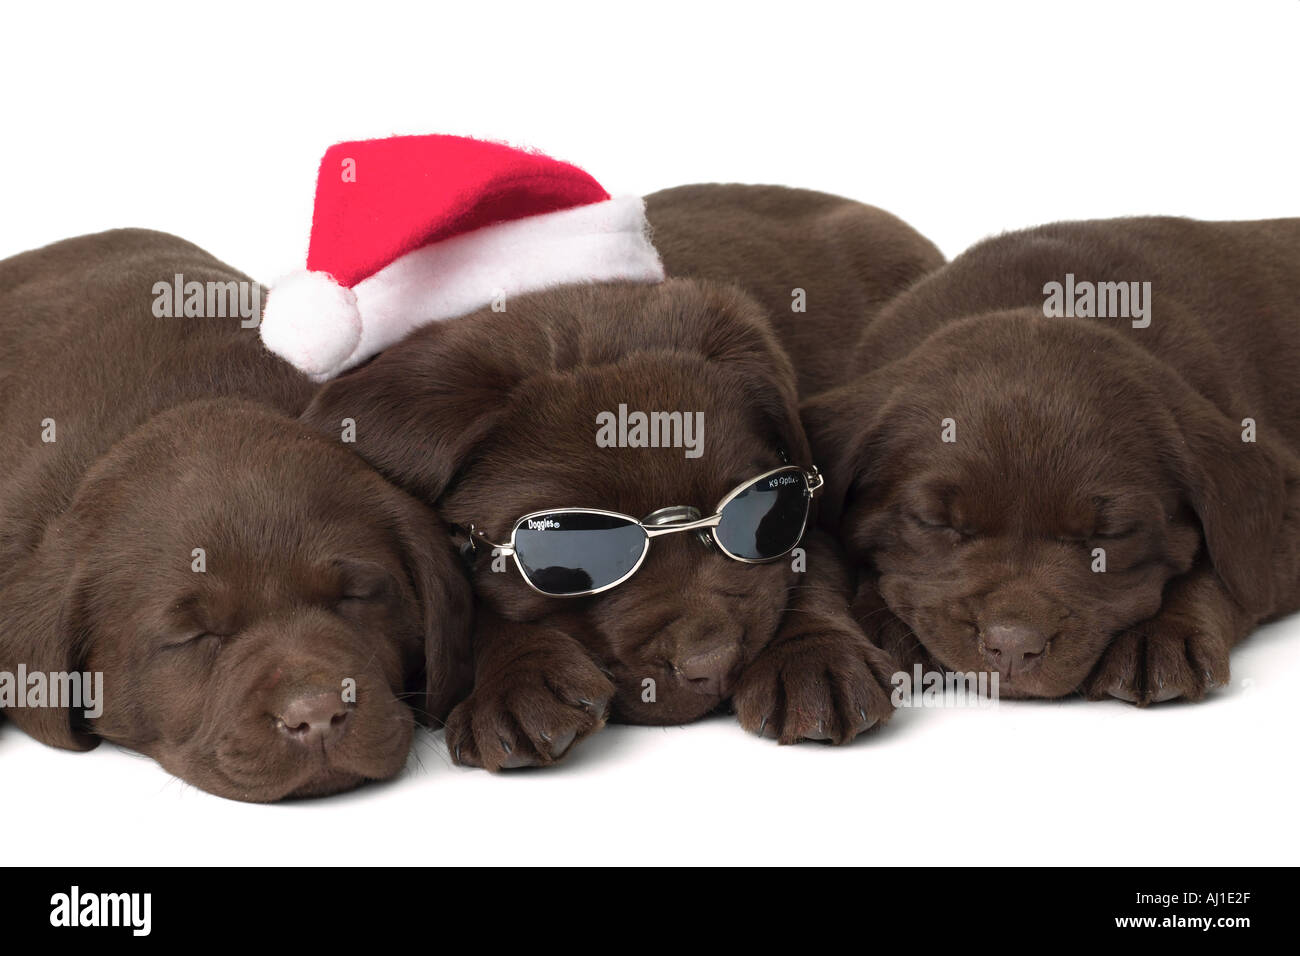 Chocolate Lab Christmas Puppies Sleeping Stock Photo Alamy